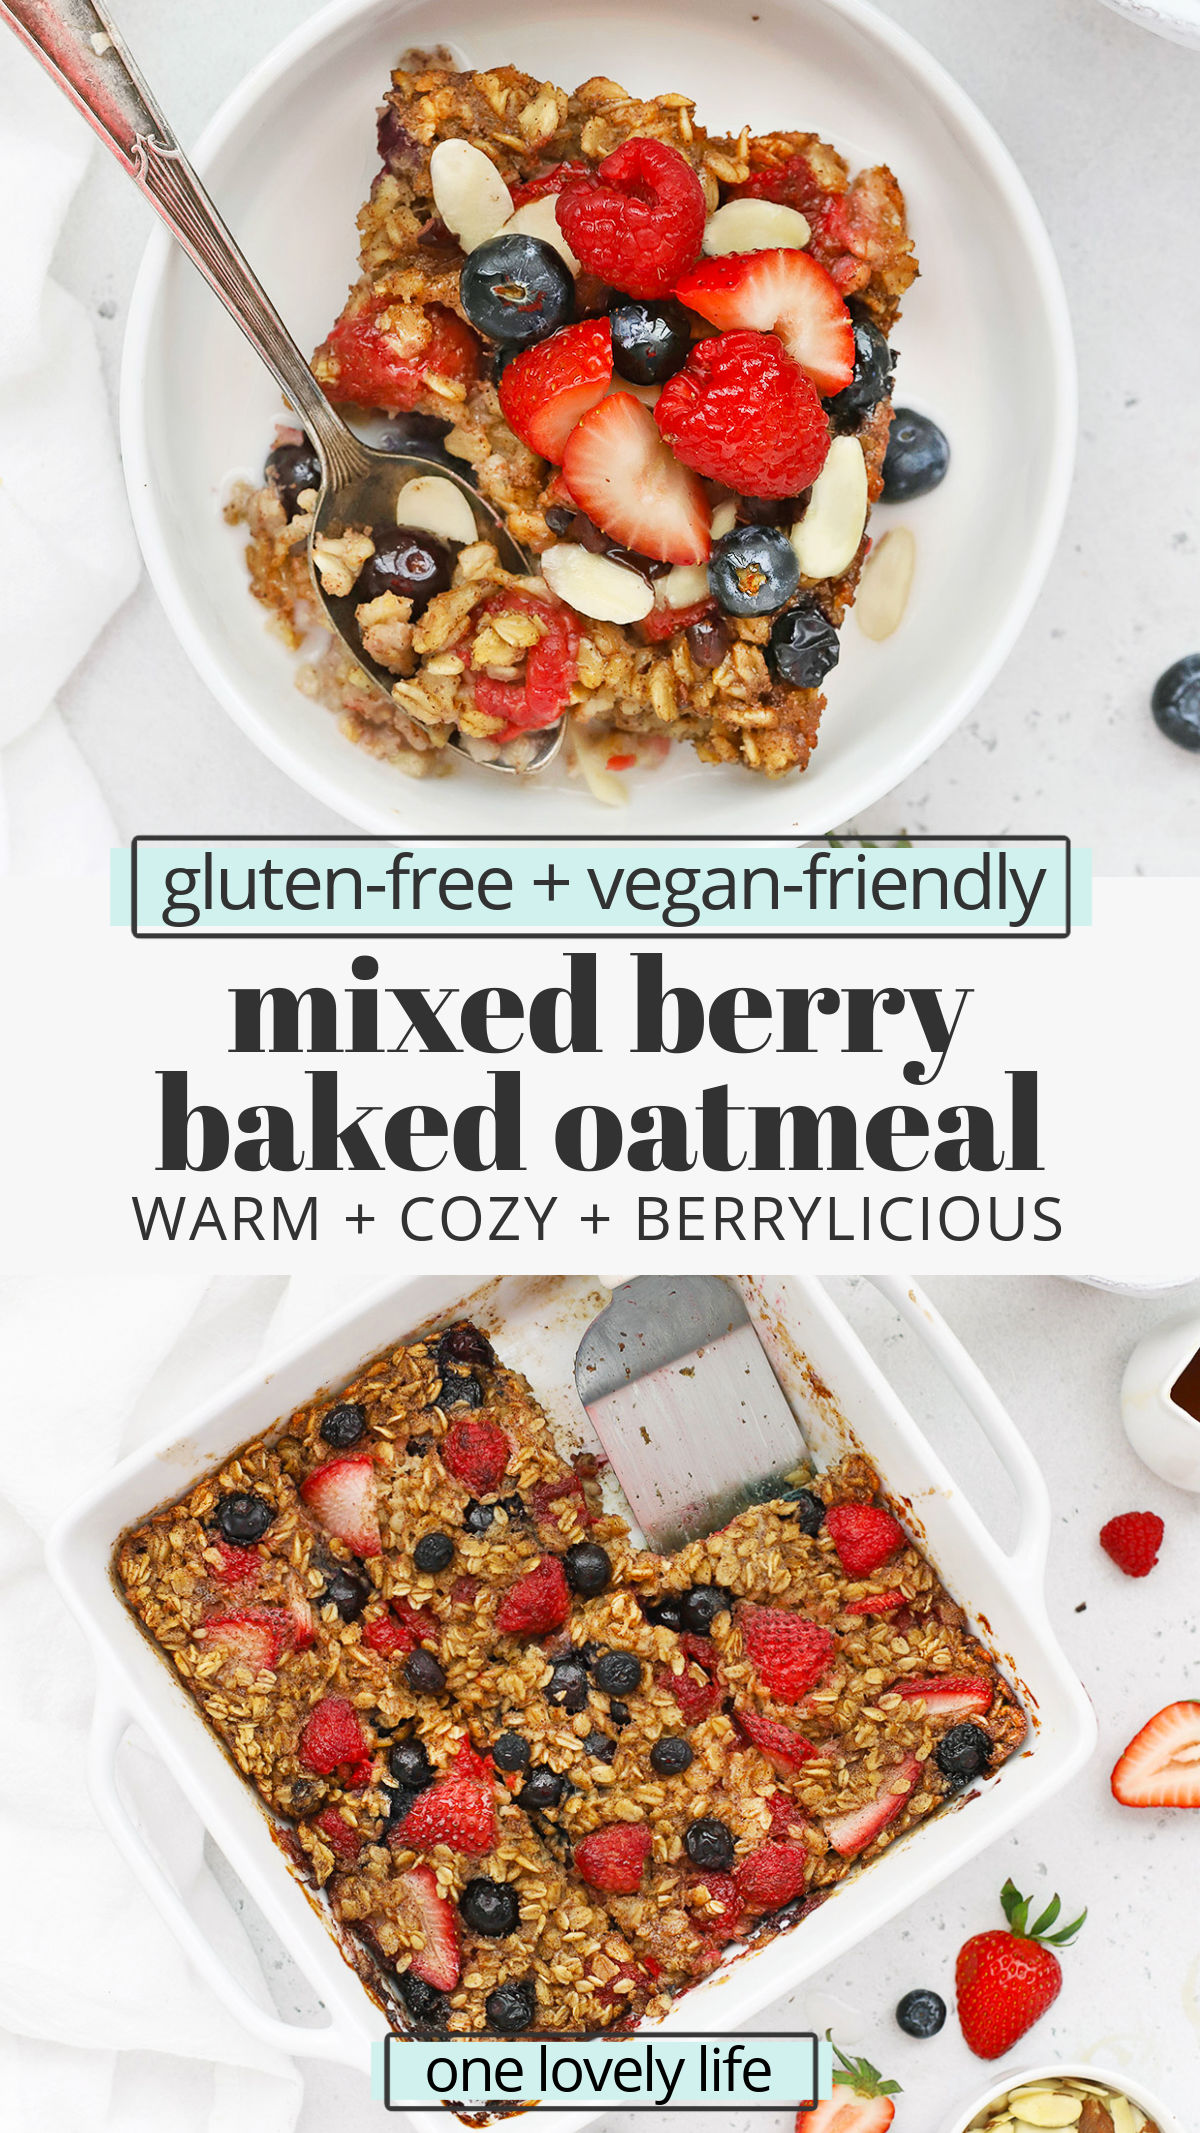 Mixed Berry Baked Oatmeal! This triple berry baked oatmeal recipe is a delightful healthy meal prep breakfast perfect for a crowd. (Gluten-Free, Vegan-Friendly) // Healthy Berry Baked Oatmeal // Vegan Berry Baked Oatmeal // Gluten-Free Berry Baked Oatmeal // Meal Prep Breakfast Recipe // Baked Oatmeal Recipe // Spring Breakfast #glutenfree #bakedoatmeal #berries #oatmeal #vegan